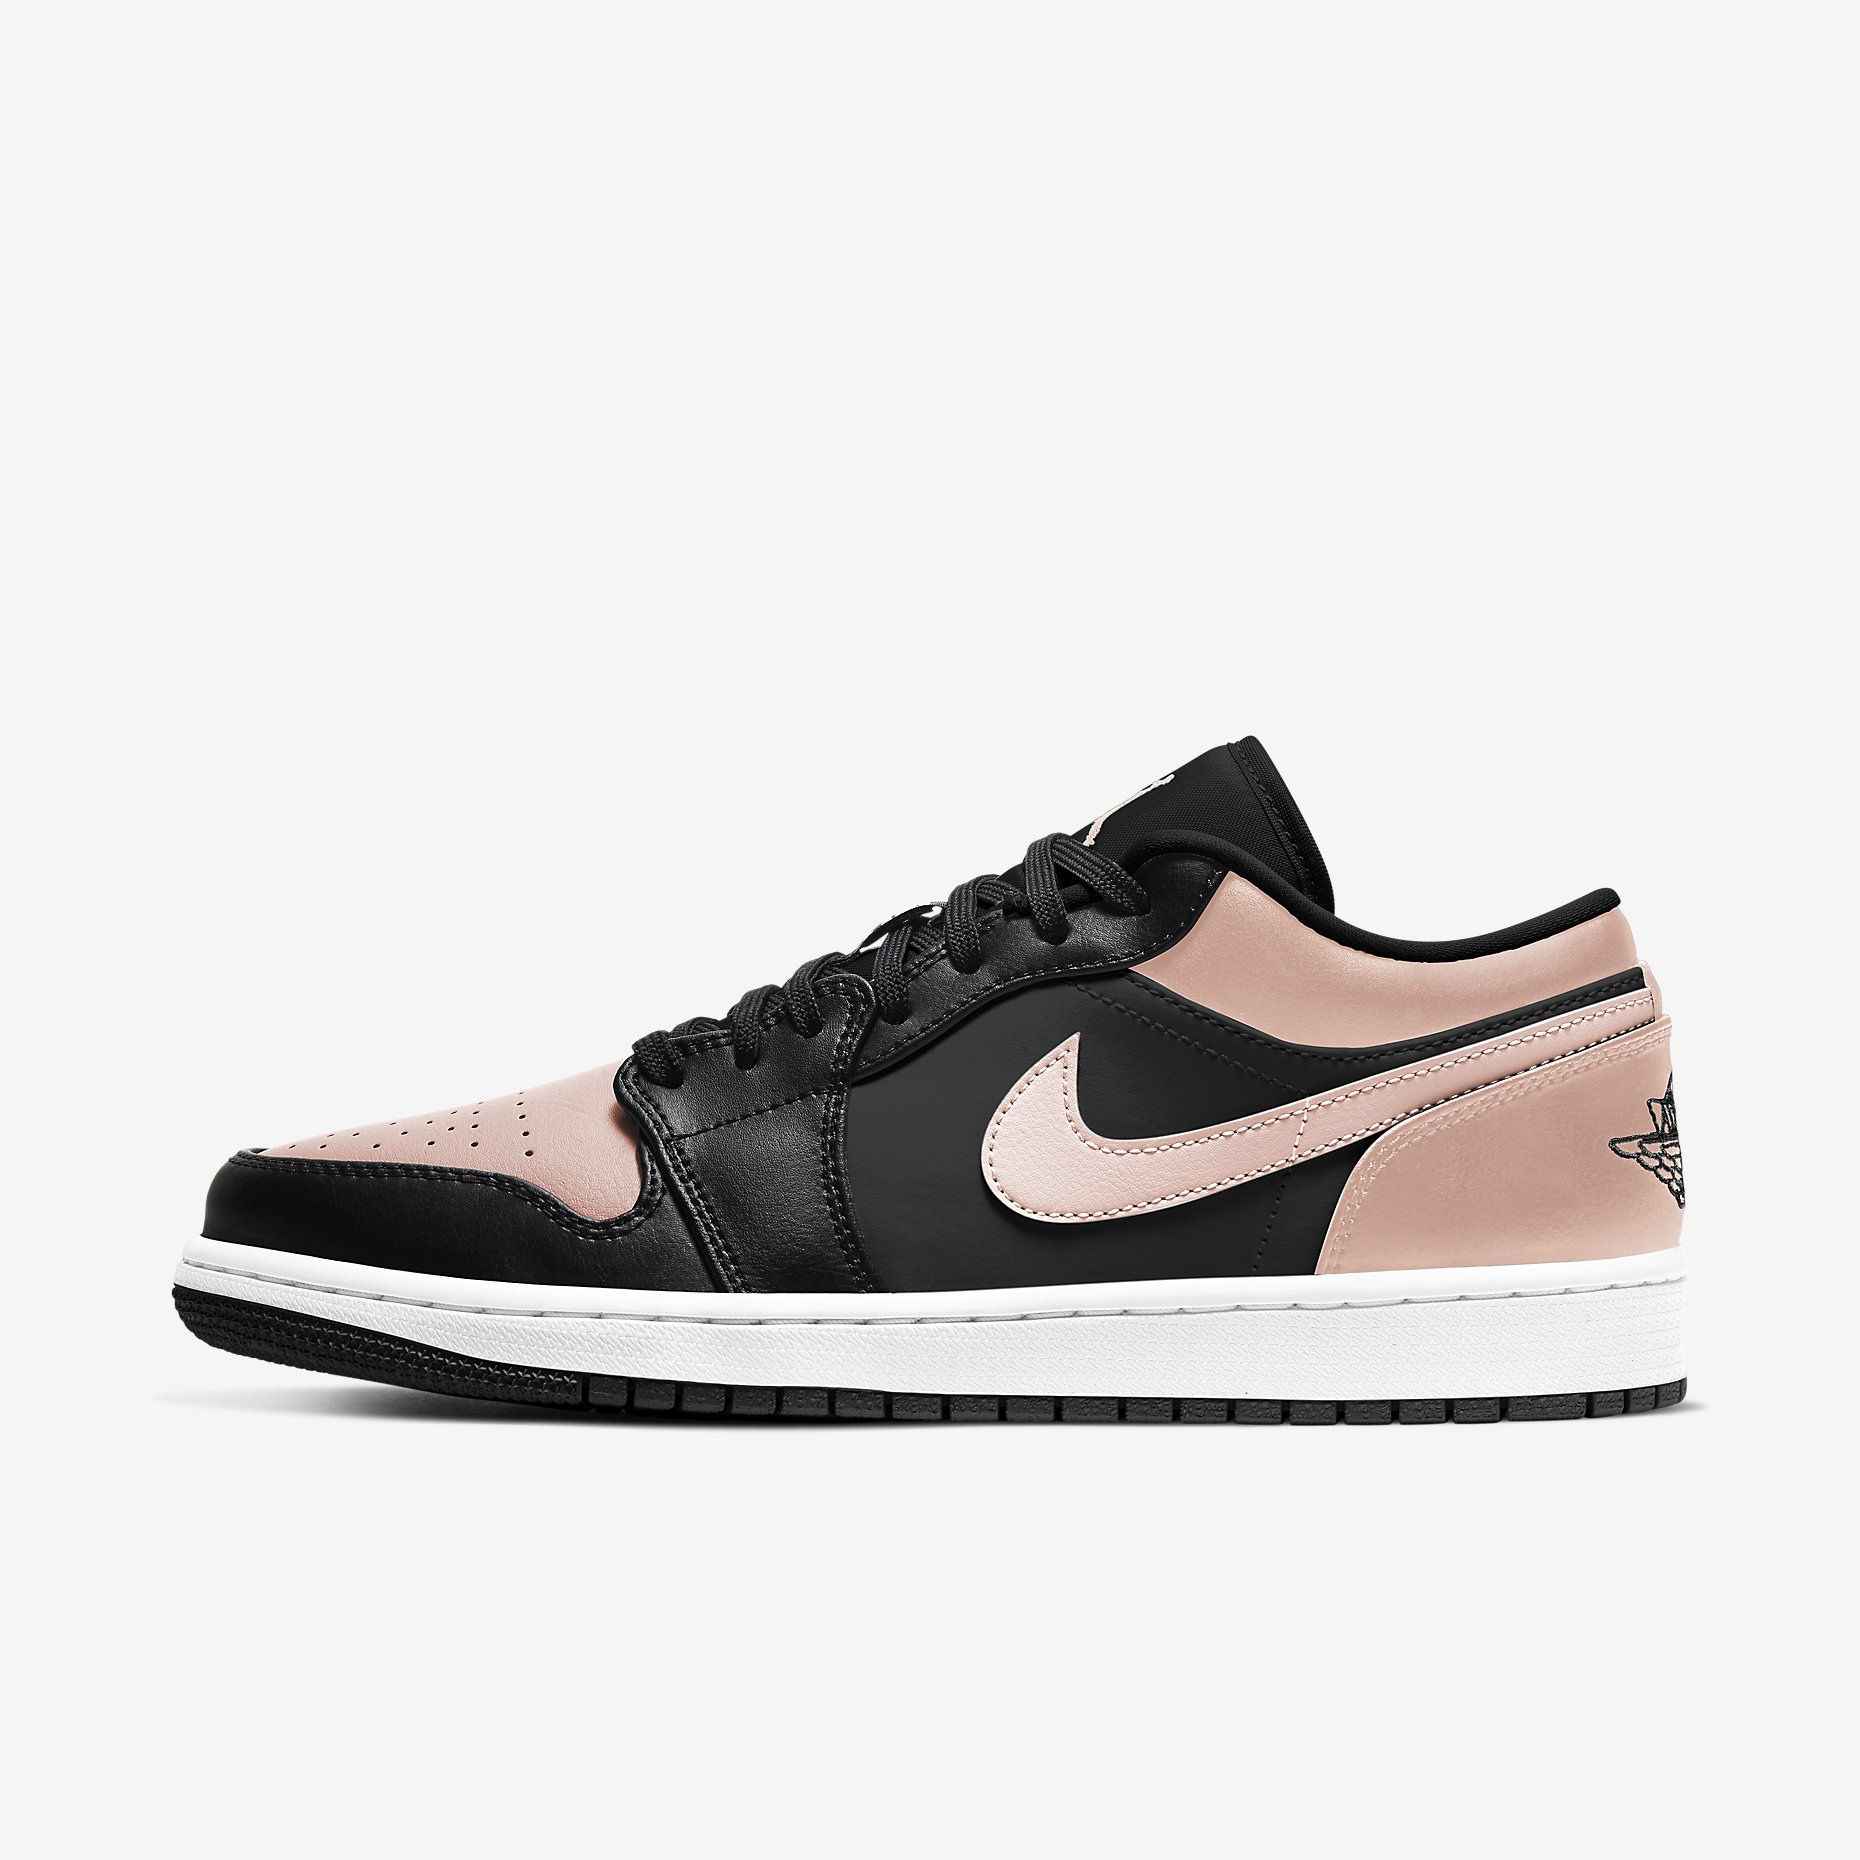 Air Jordan 1 Low 'Arctic Orange' }